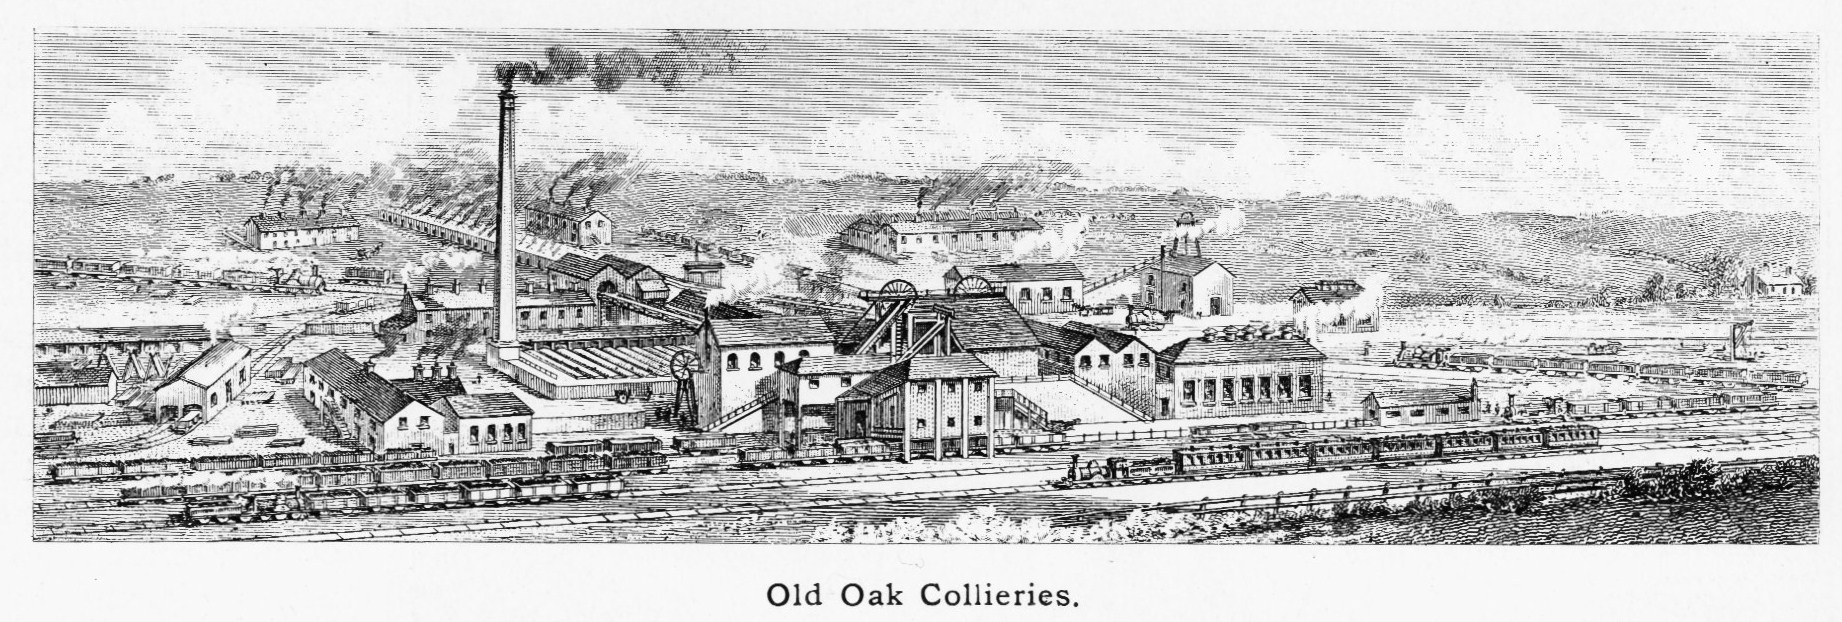 150th Anniversary Of The Oaks Colliery Disaster The